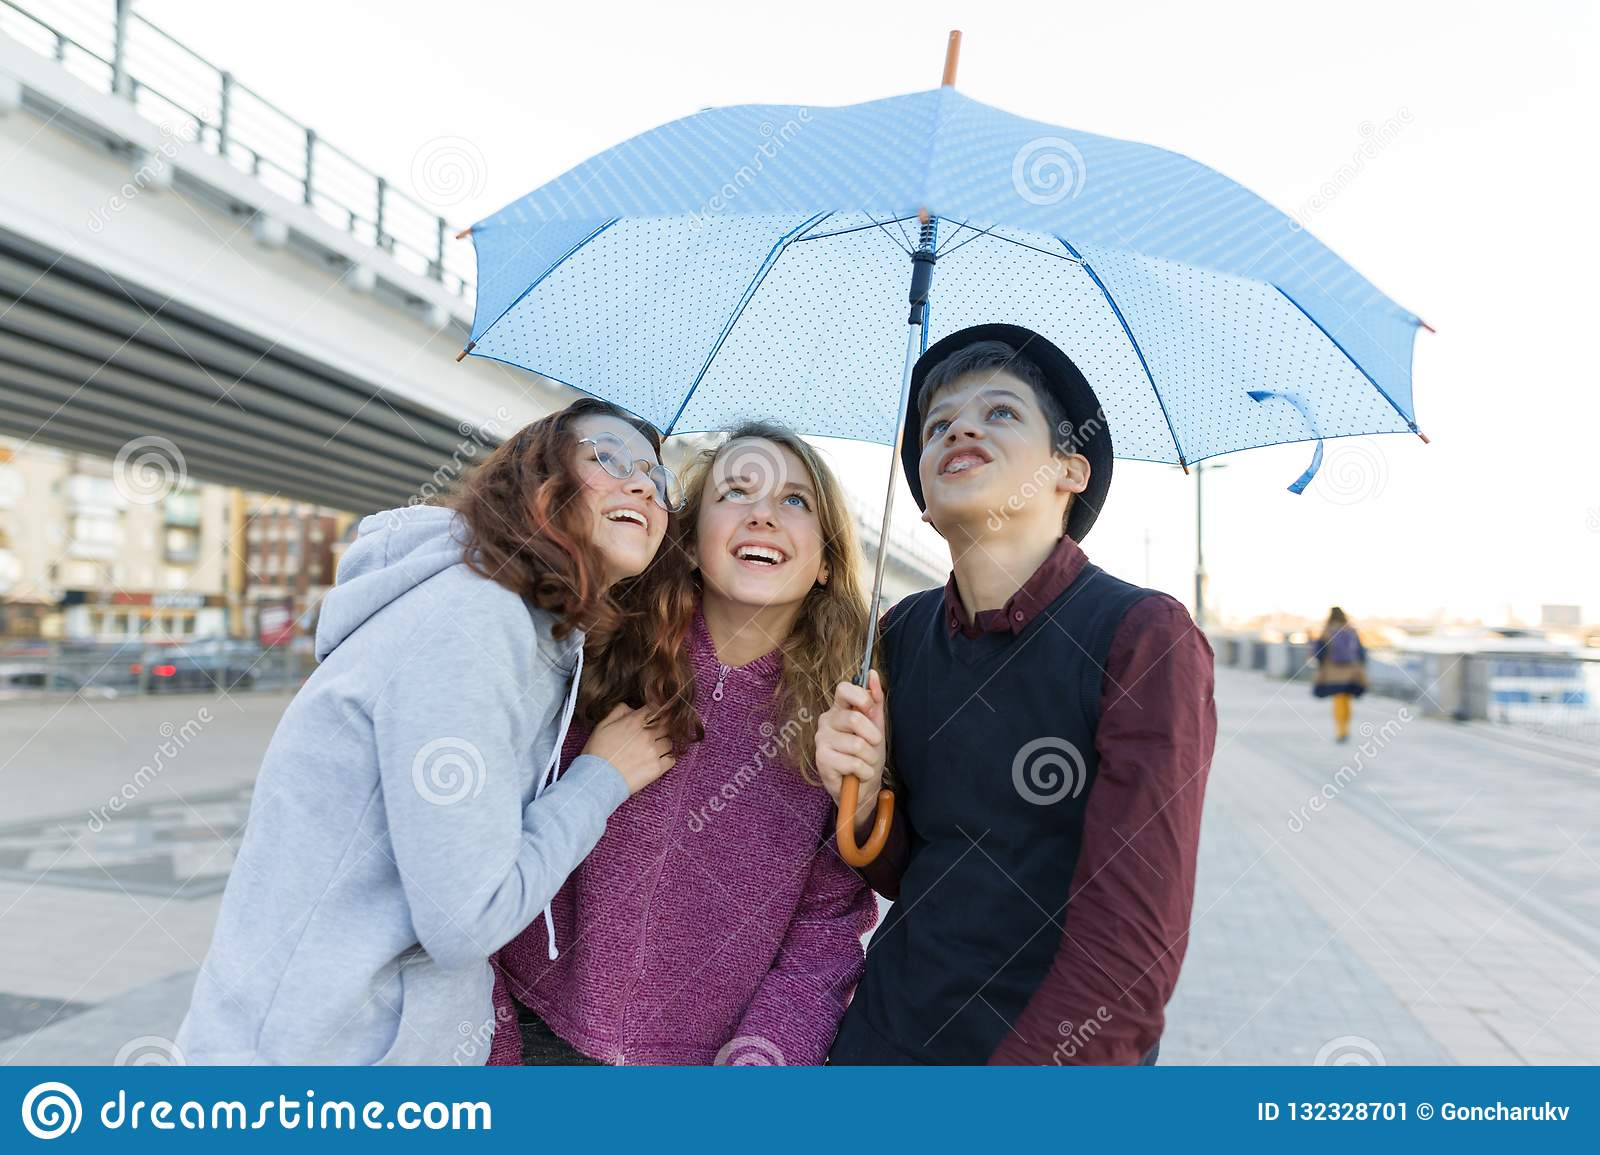 Group of teenagers friends having fun in the city, laughing kids with umbrella. Urban teen lifestyle